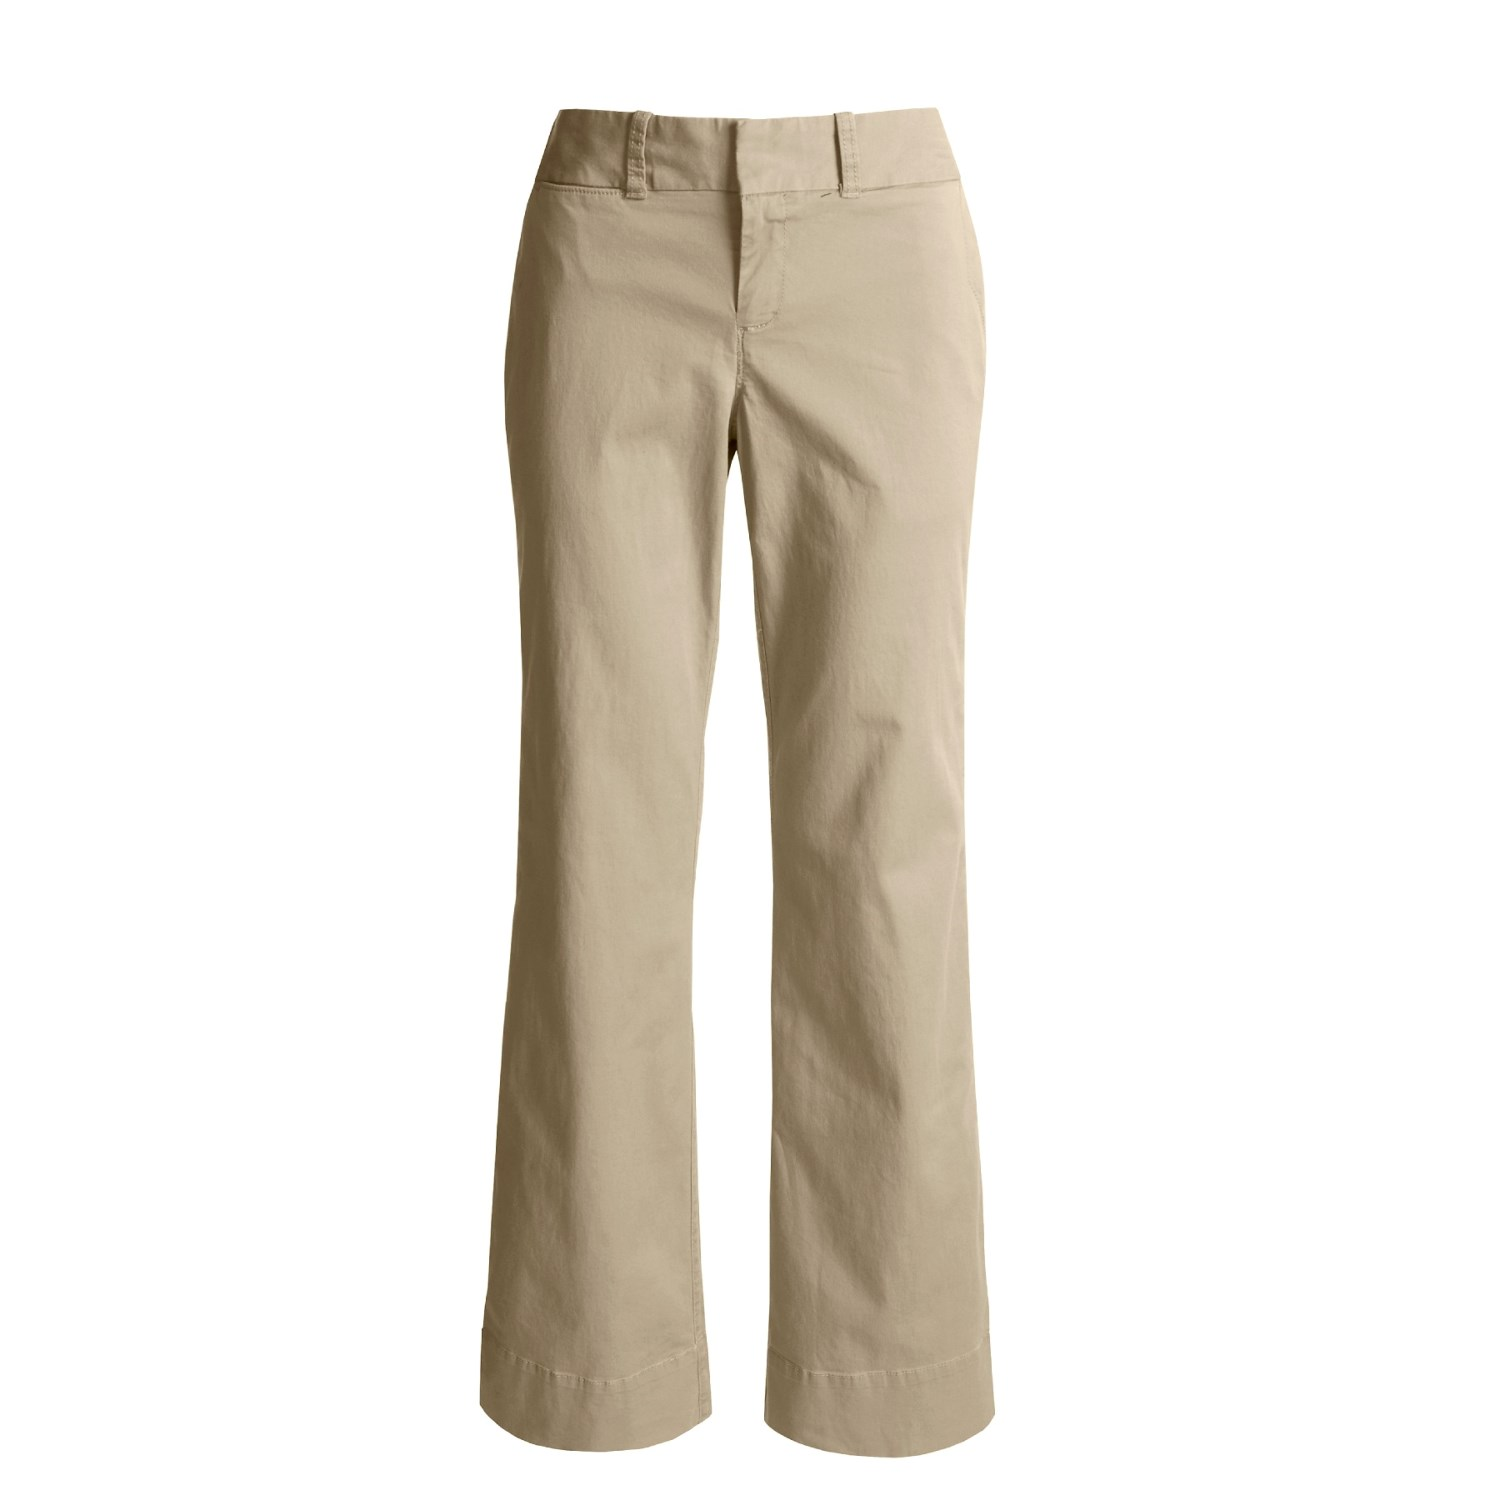 Cool Pics Photos  Khaki Pants For Women